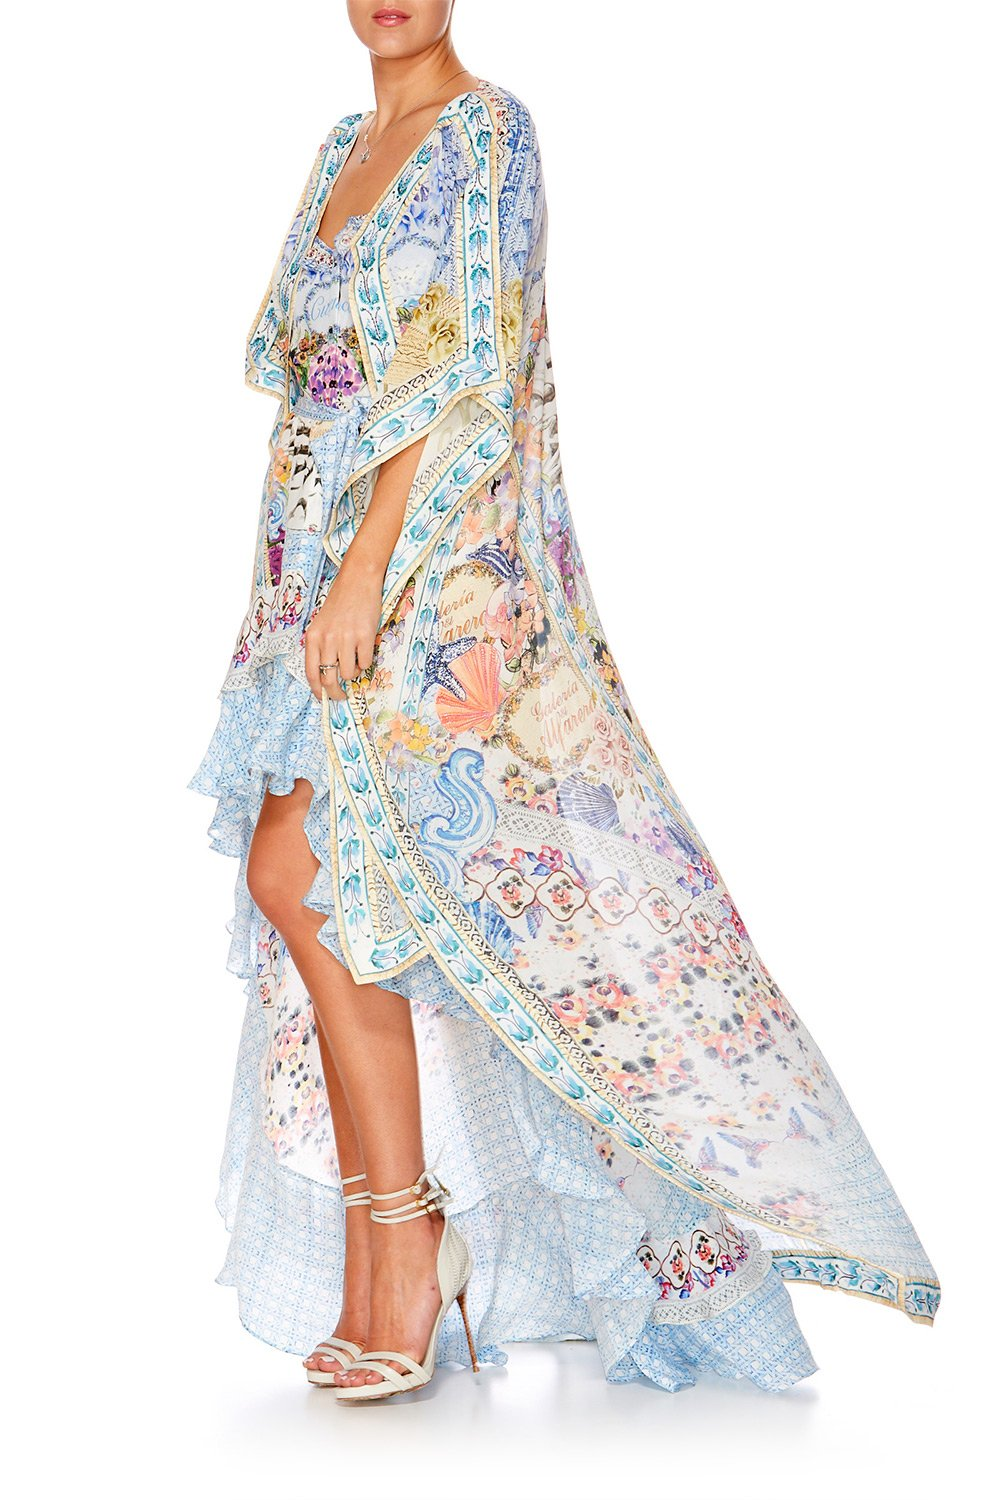 GIRL NEXT DOOR DRAPE LONG BACK OVERLAY